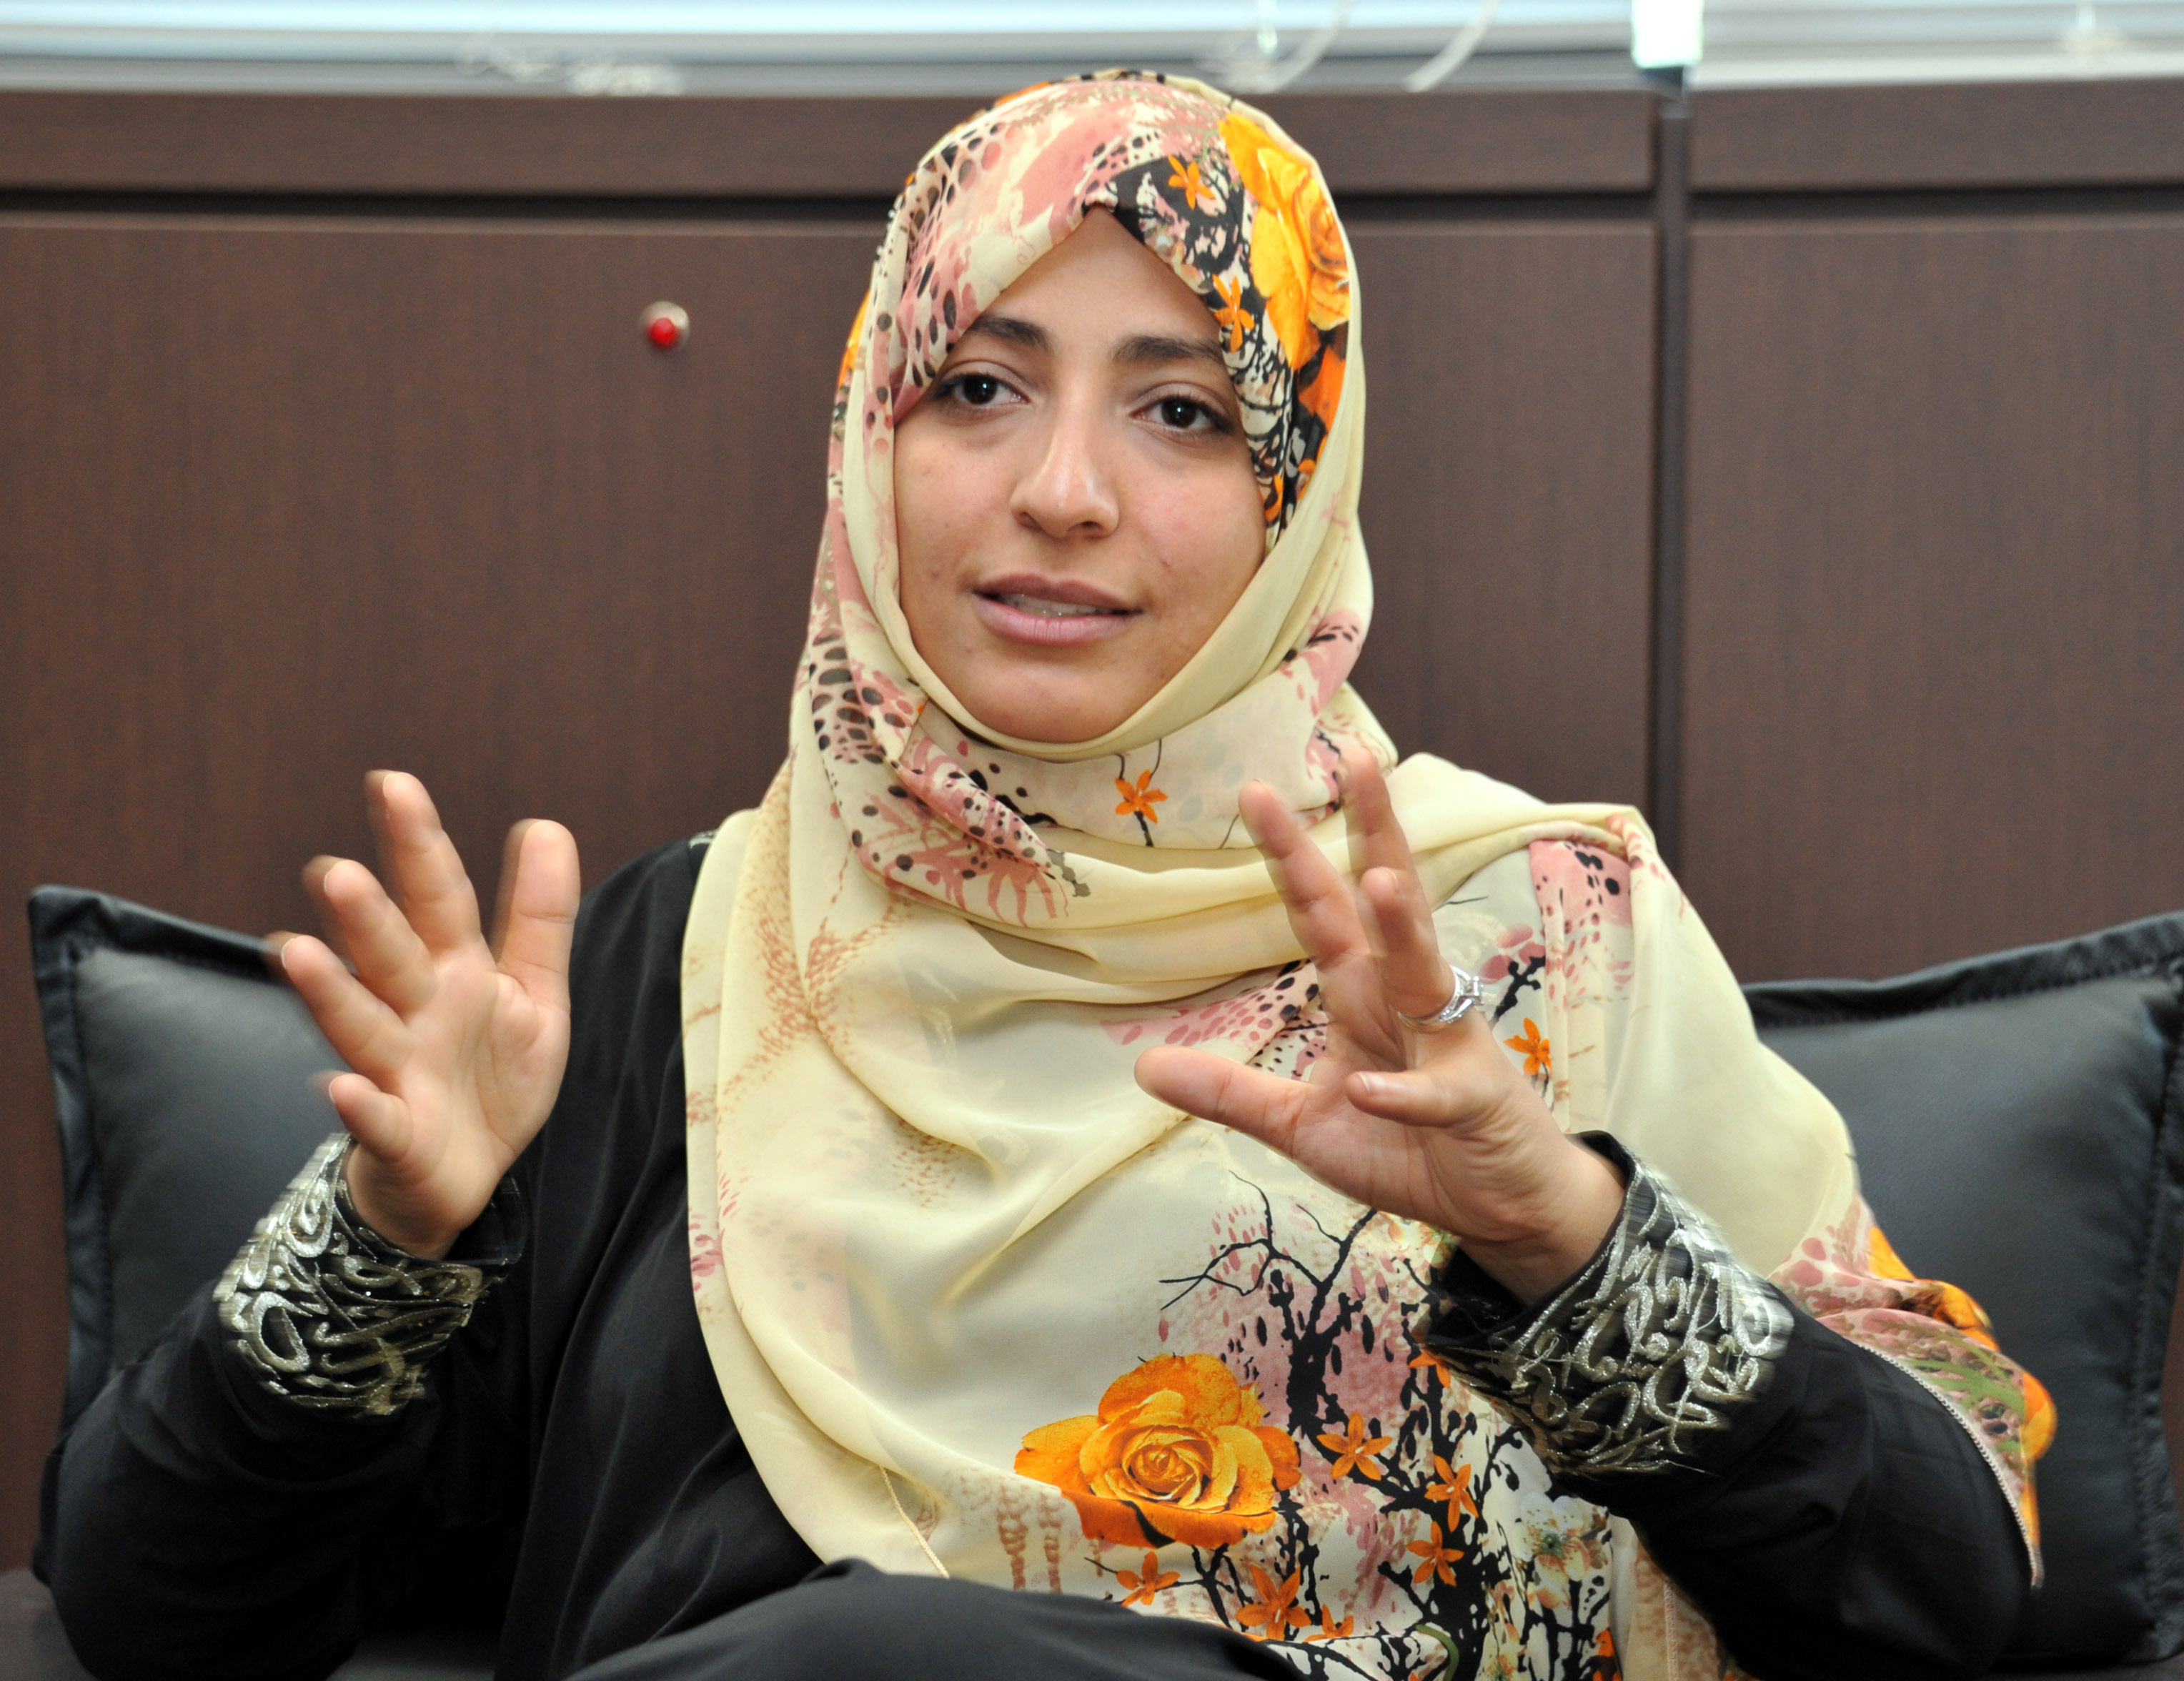 Tawakkol Karman, a Yemeni human rights activist and Nobel Peace Prize winner, is interviewed recently by The Japan Times in Tokyo. | YOSHIAKI MIURA